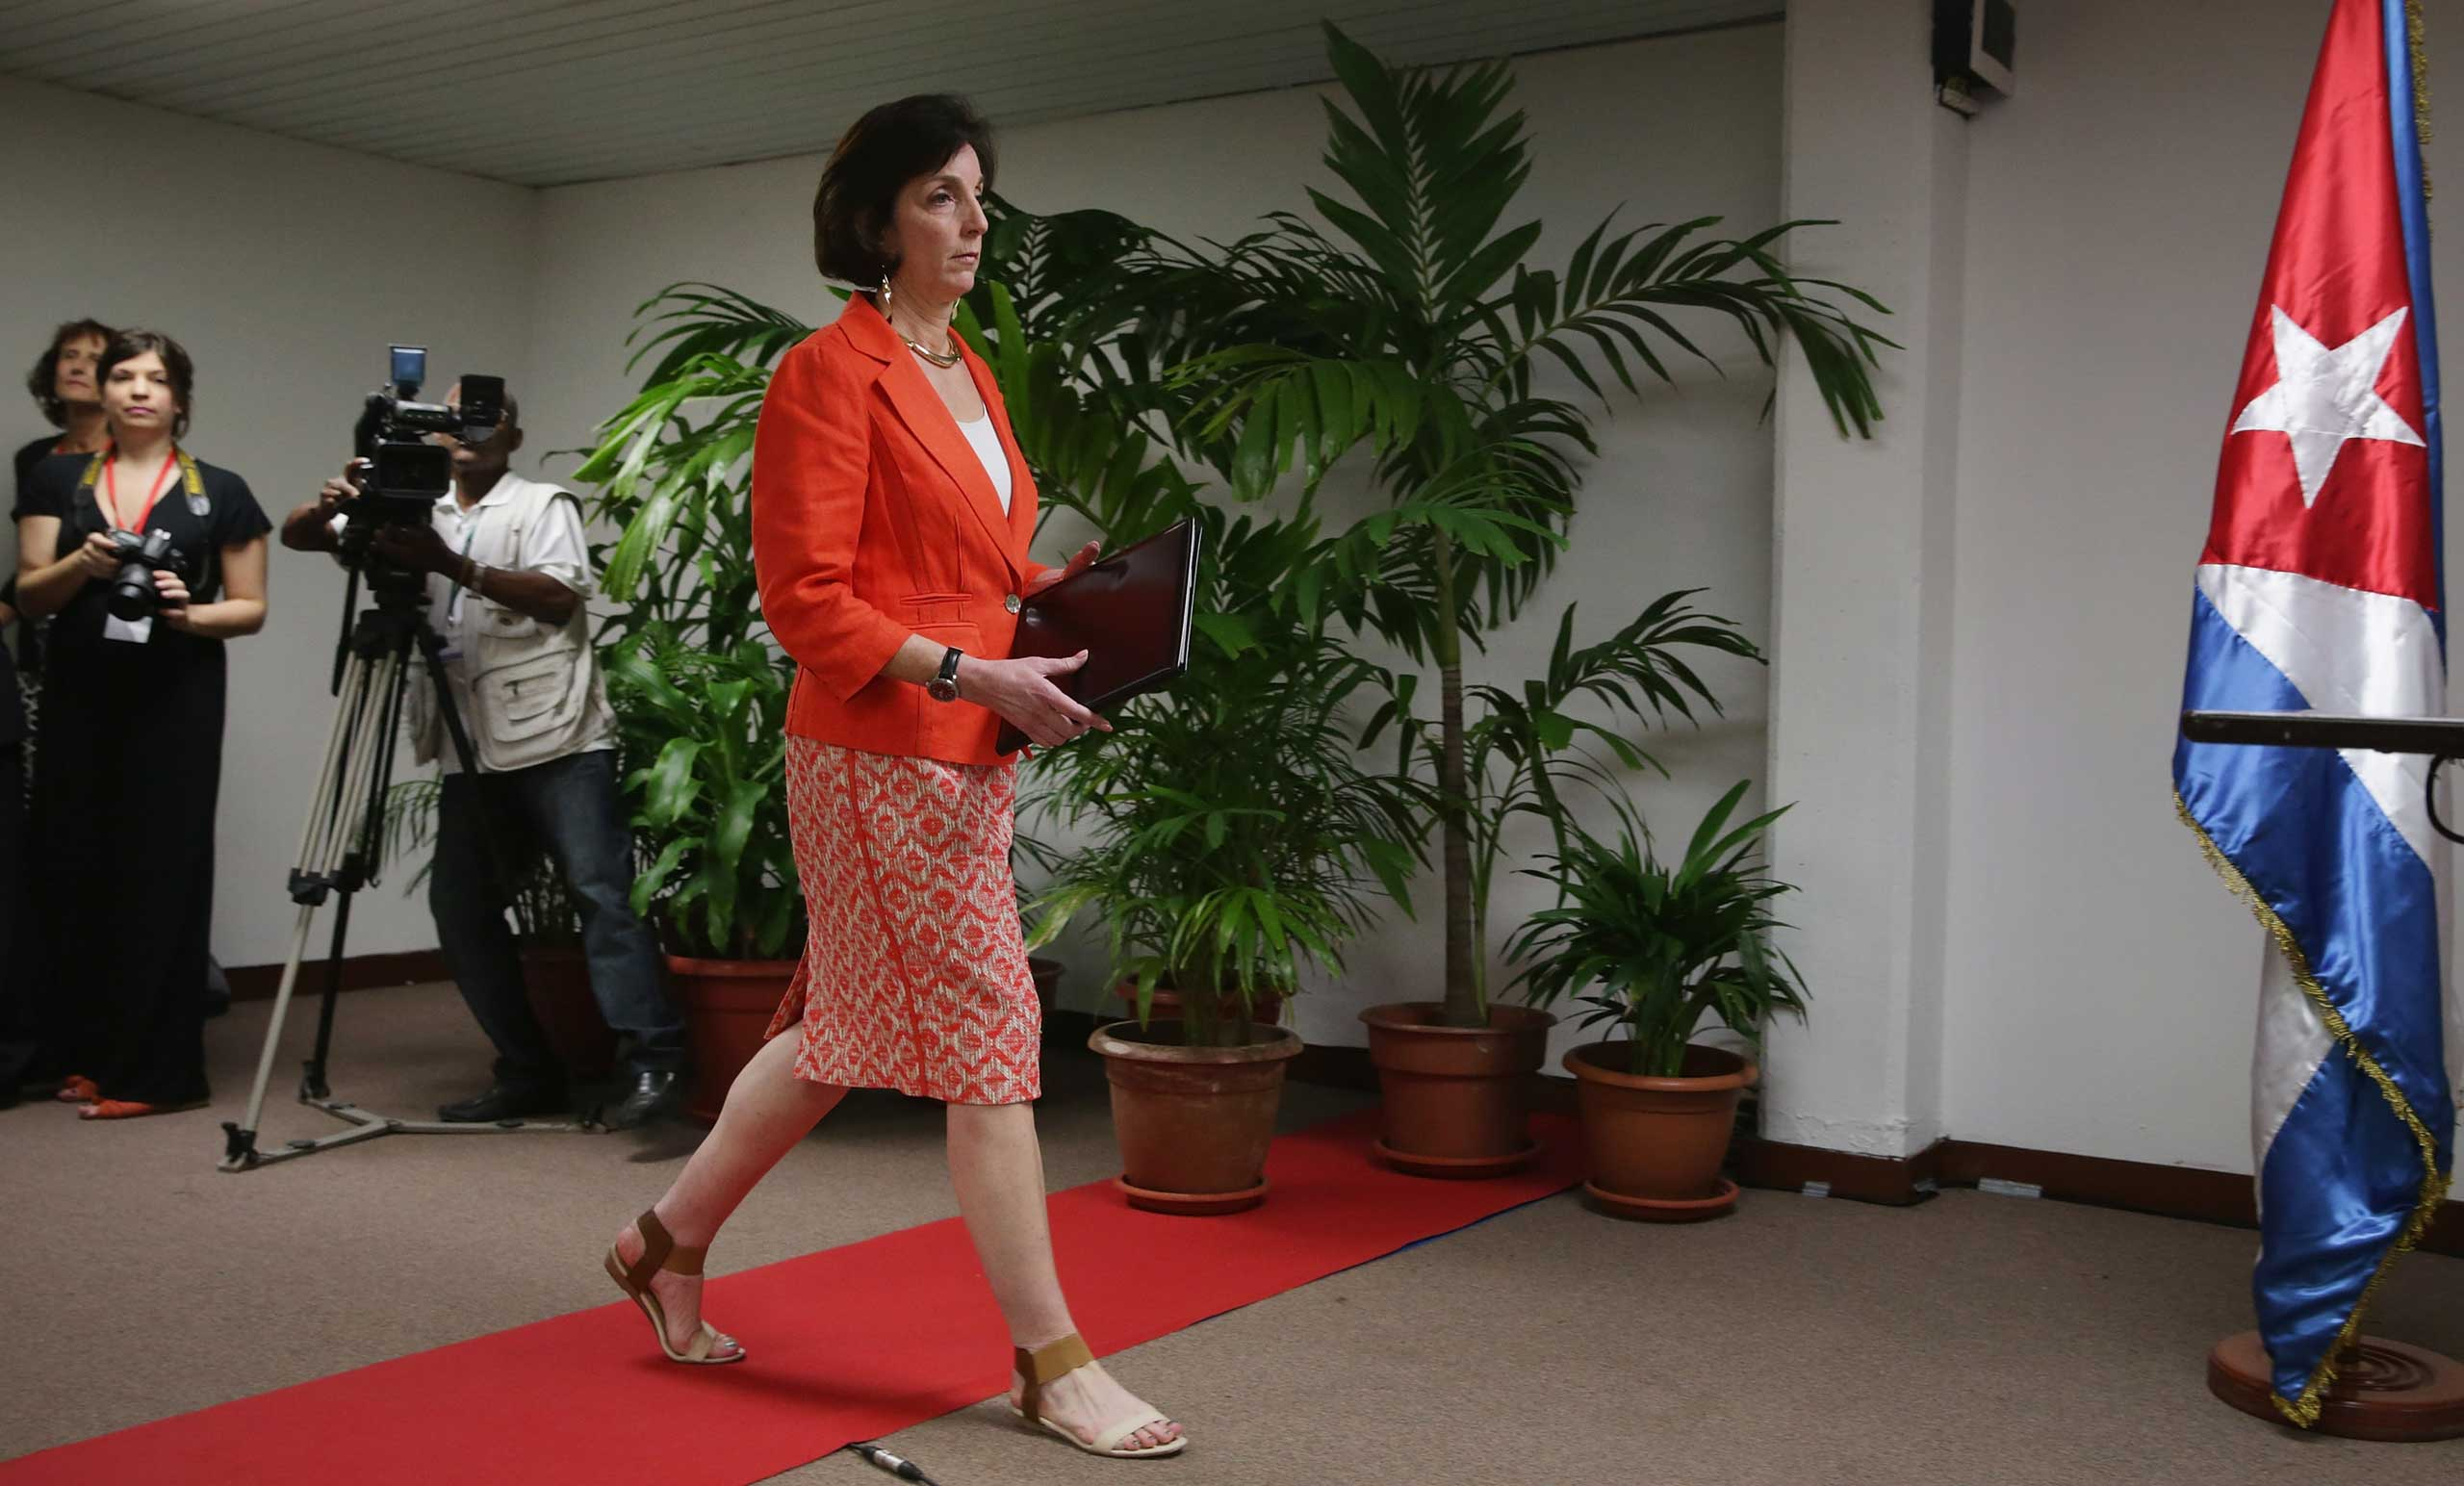 Roberta Jacobson, U.S Assistant Secretary of State for Western Hemisphere Affairs, arrives to speak to the media before taking questions during diplomatic talks with Cuba at the Palacio de las Convenciones de La Habana on Jan. 22, 2015 in Havana, Cuba.